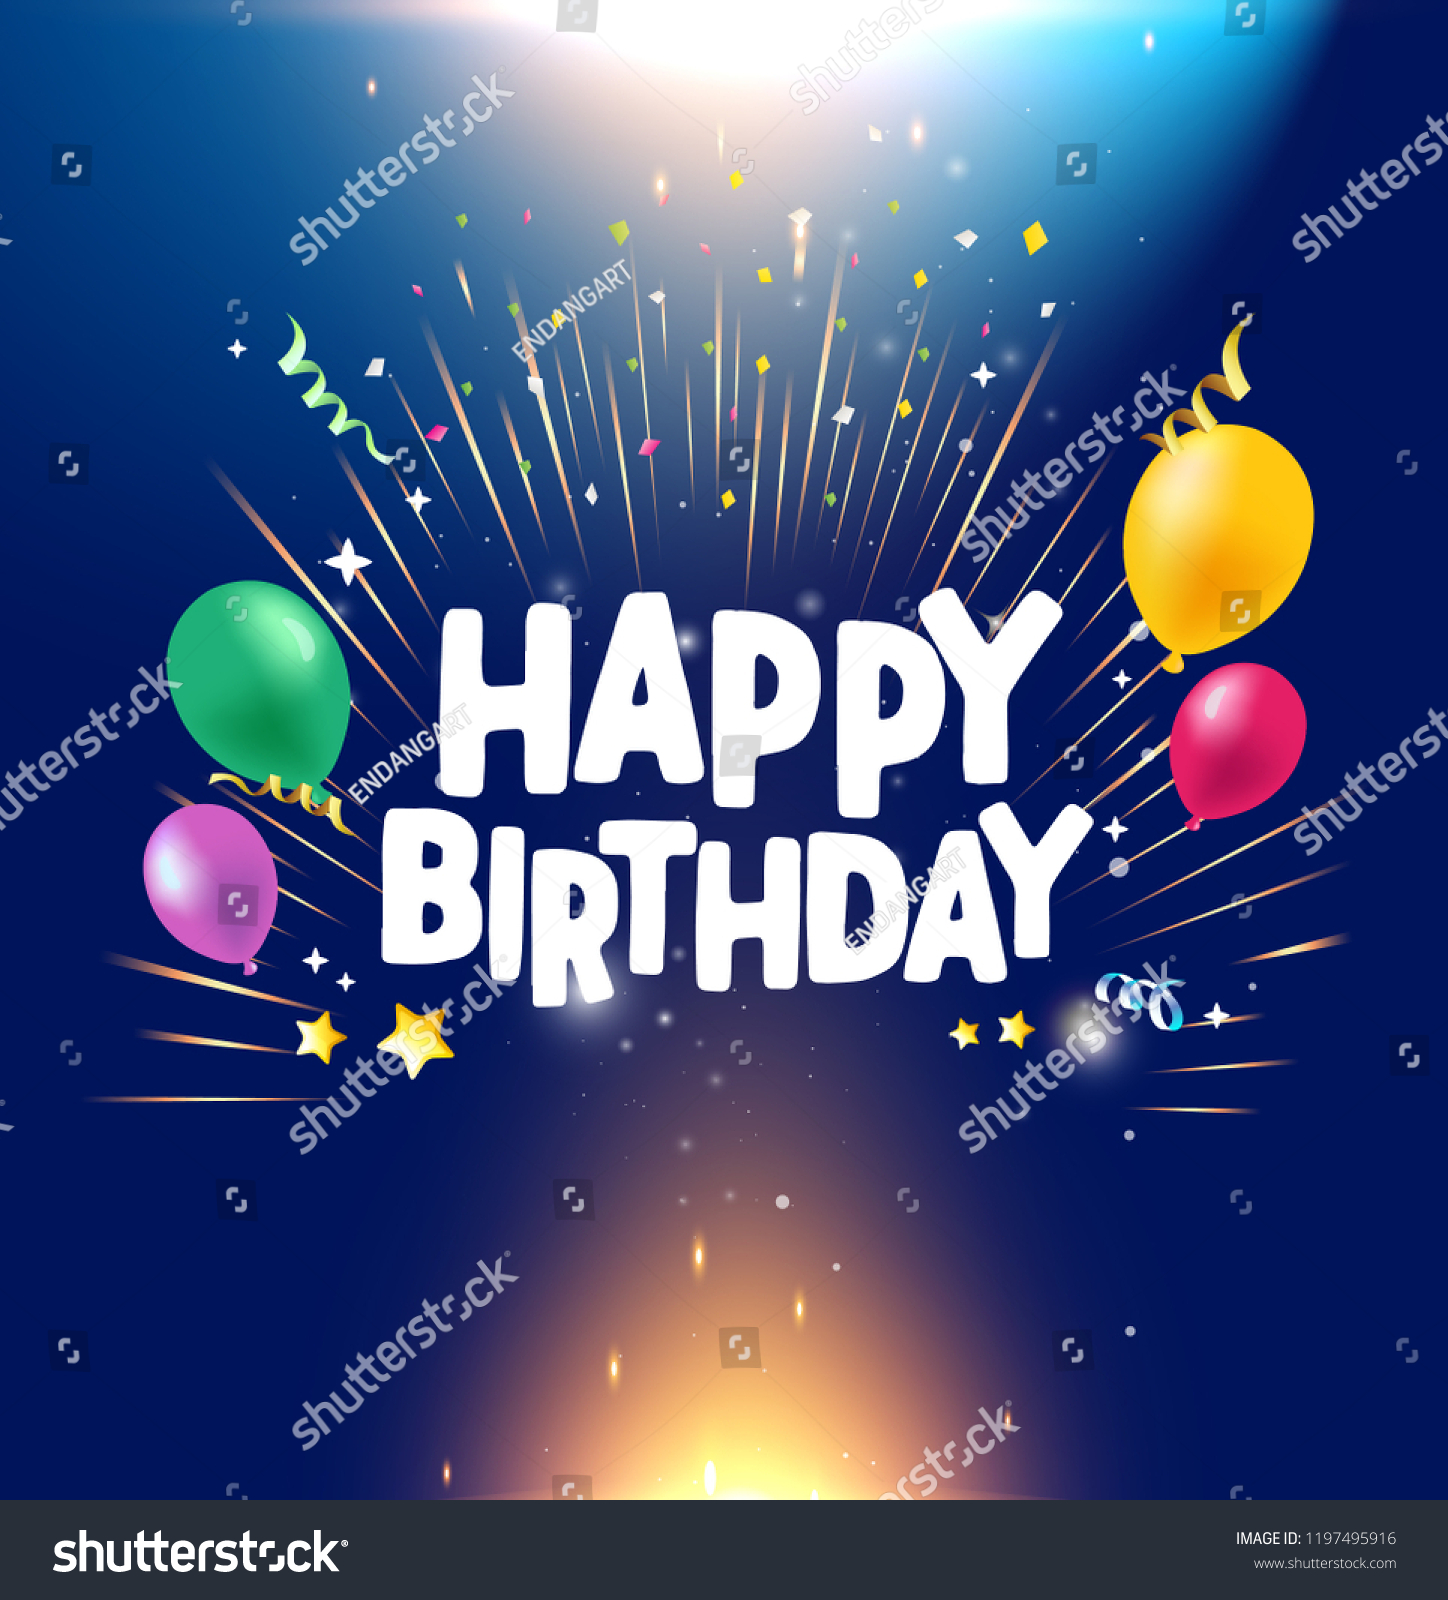 Happy Birthday Greetings Background Stock Vector Royalty Free 1197495916